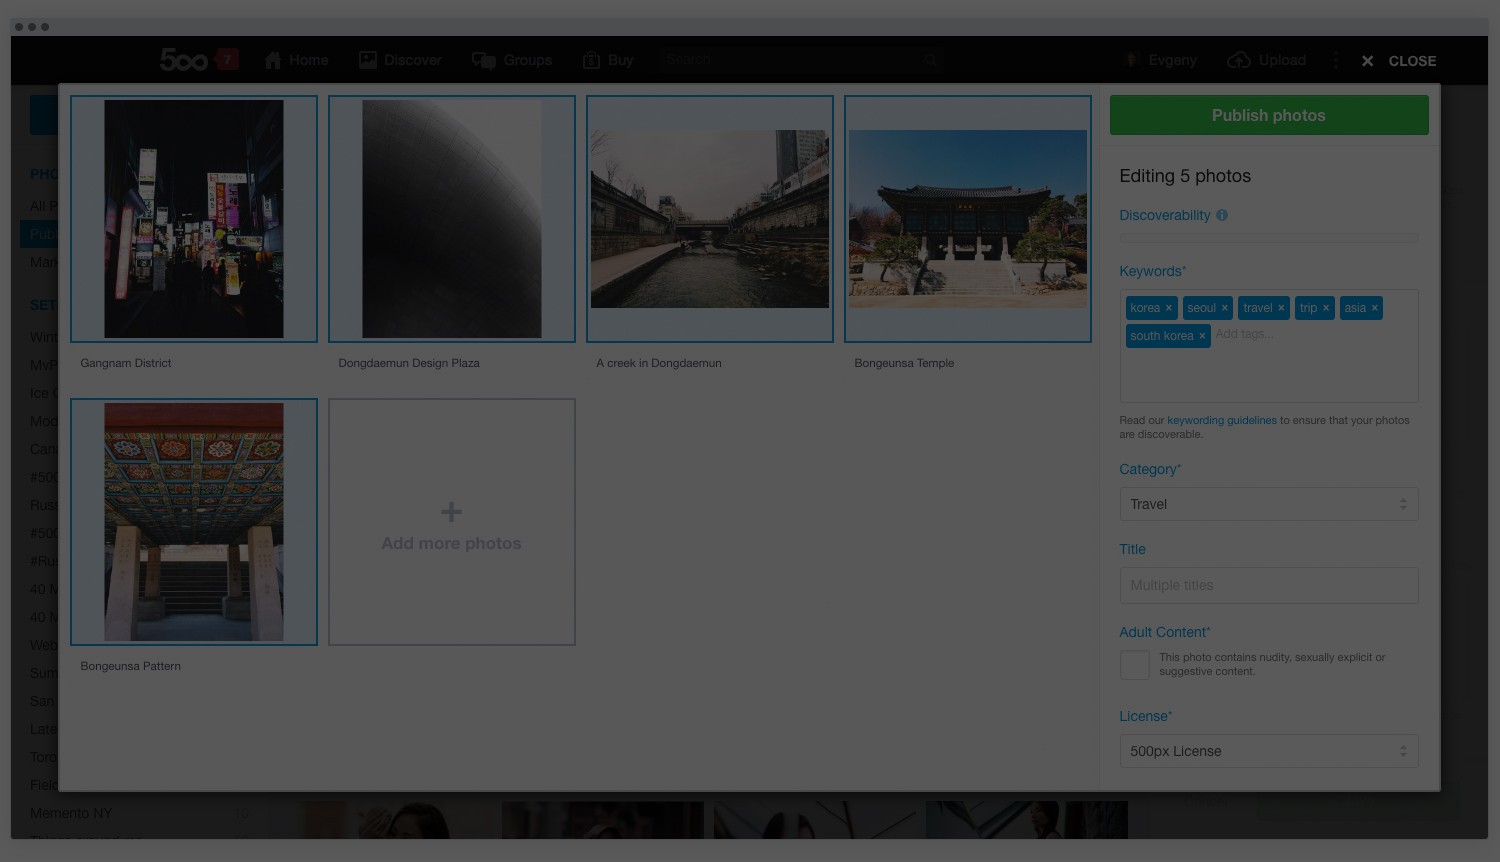 See the New 500px Uploader in Action, Now with Bulk Upload!